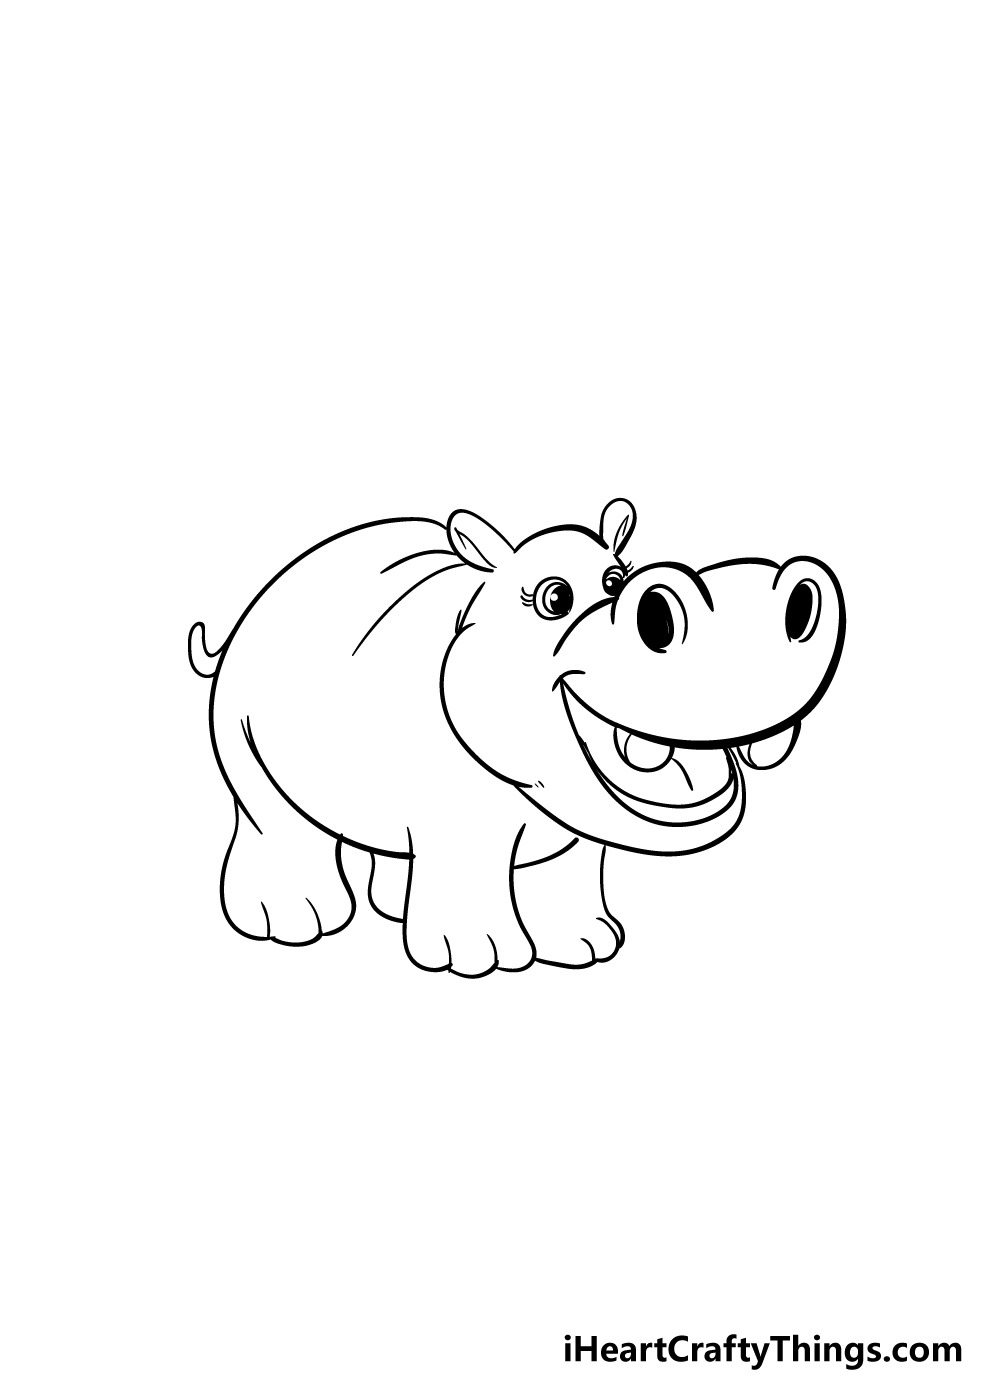 hippo drawing step 5